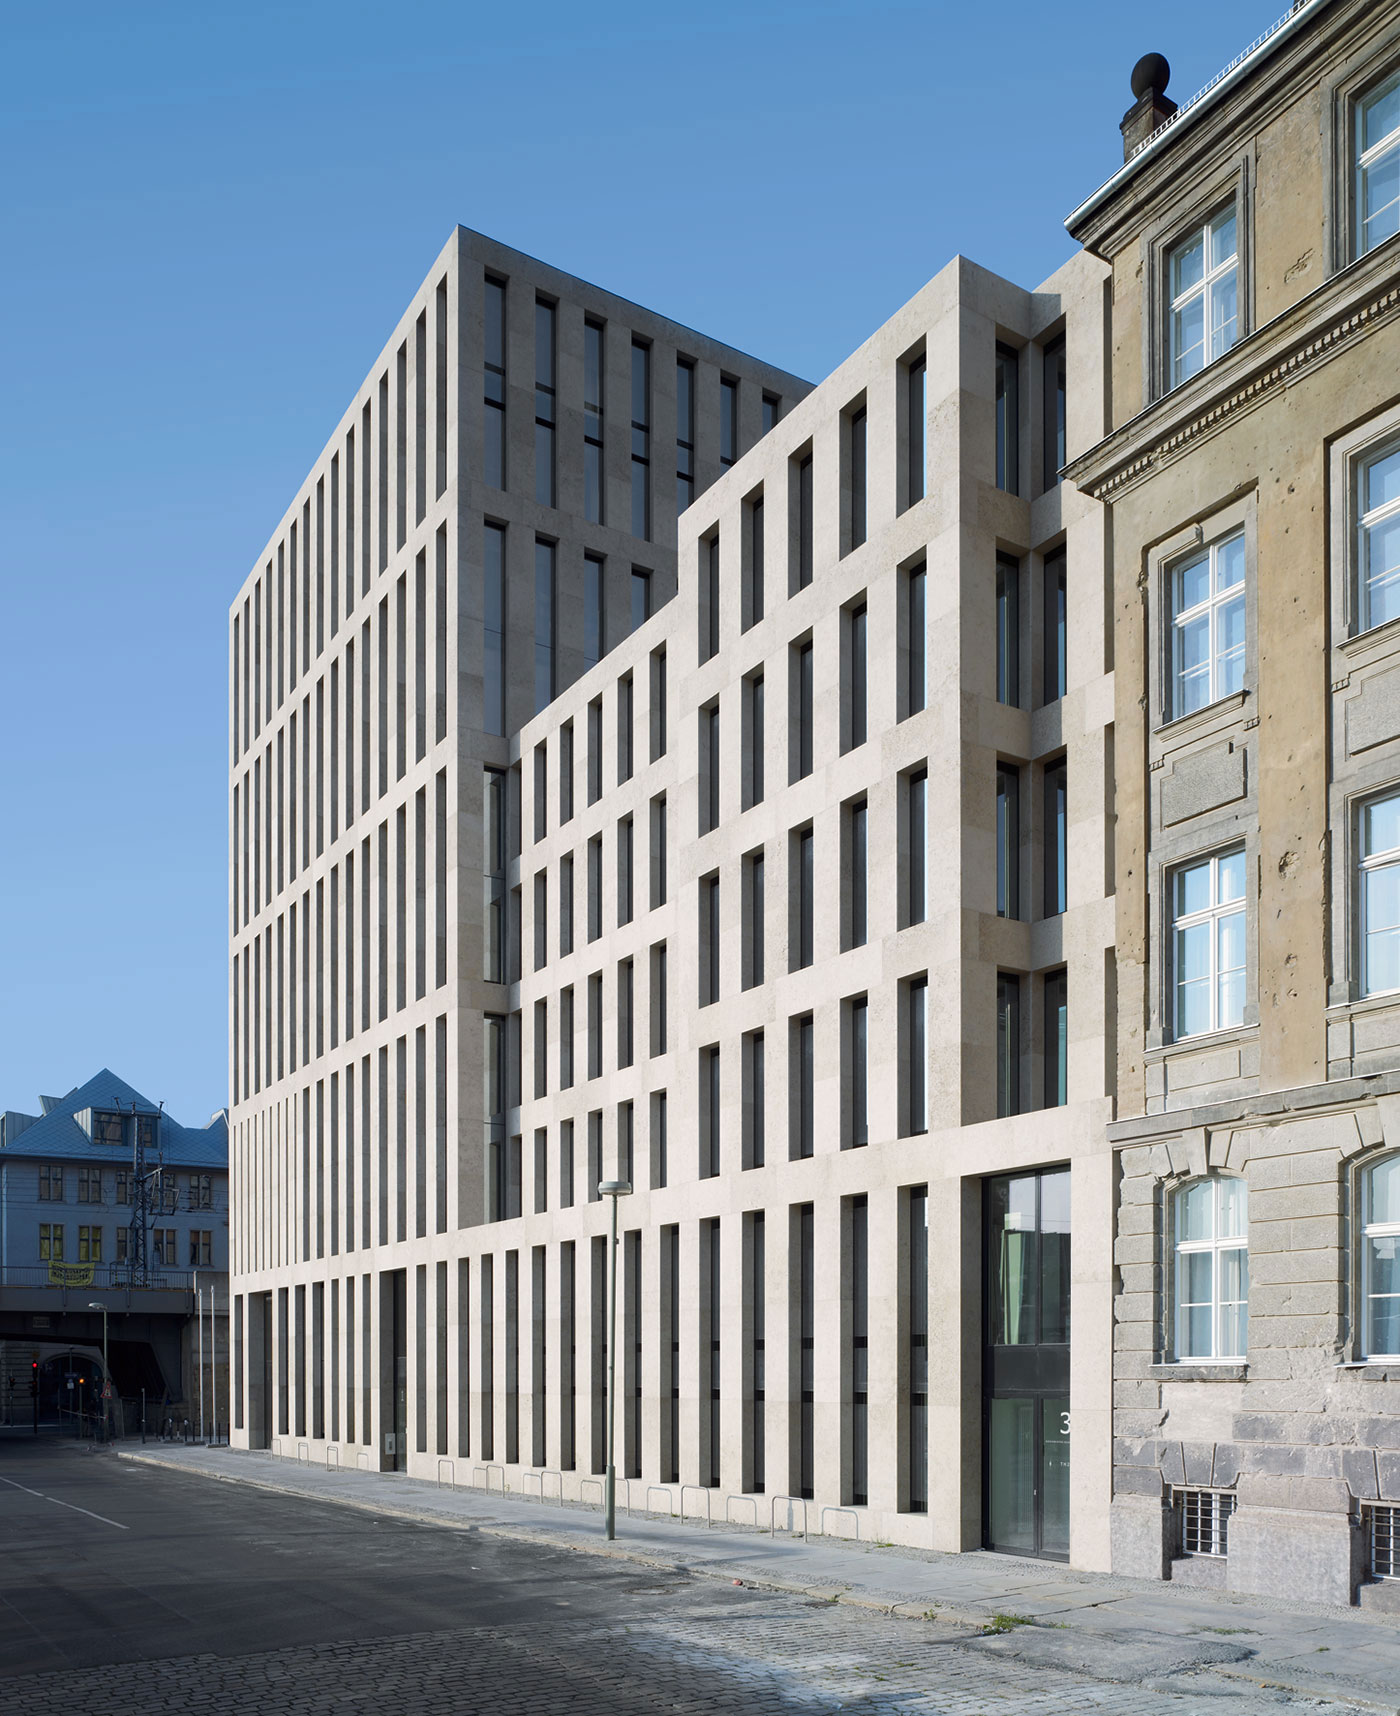 Jacob and Wilhelm Grimm Centre Berlin by Max Mudler Architekt | Yellowtrace